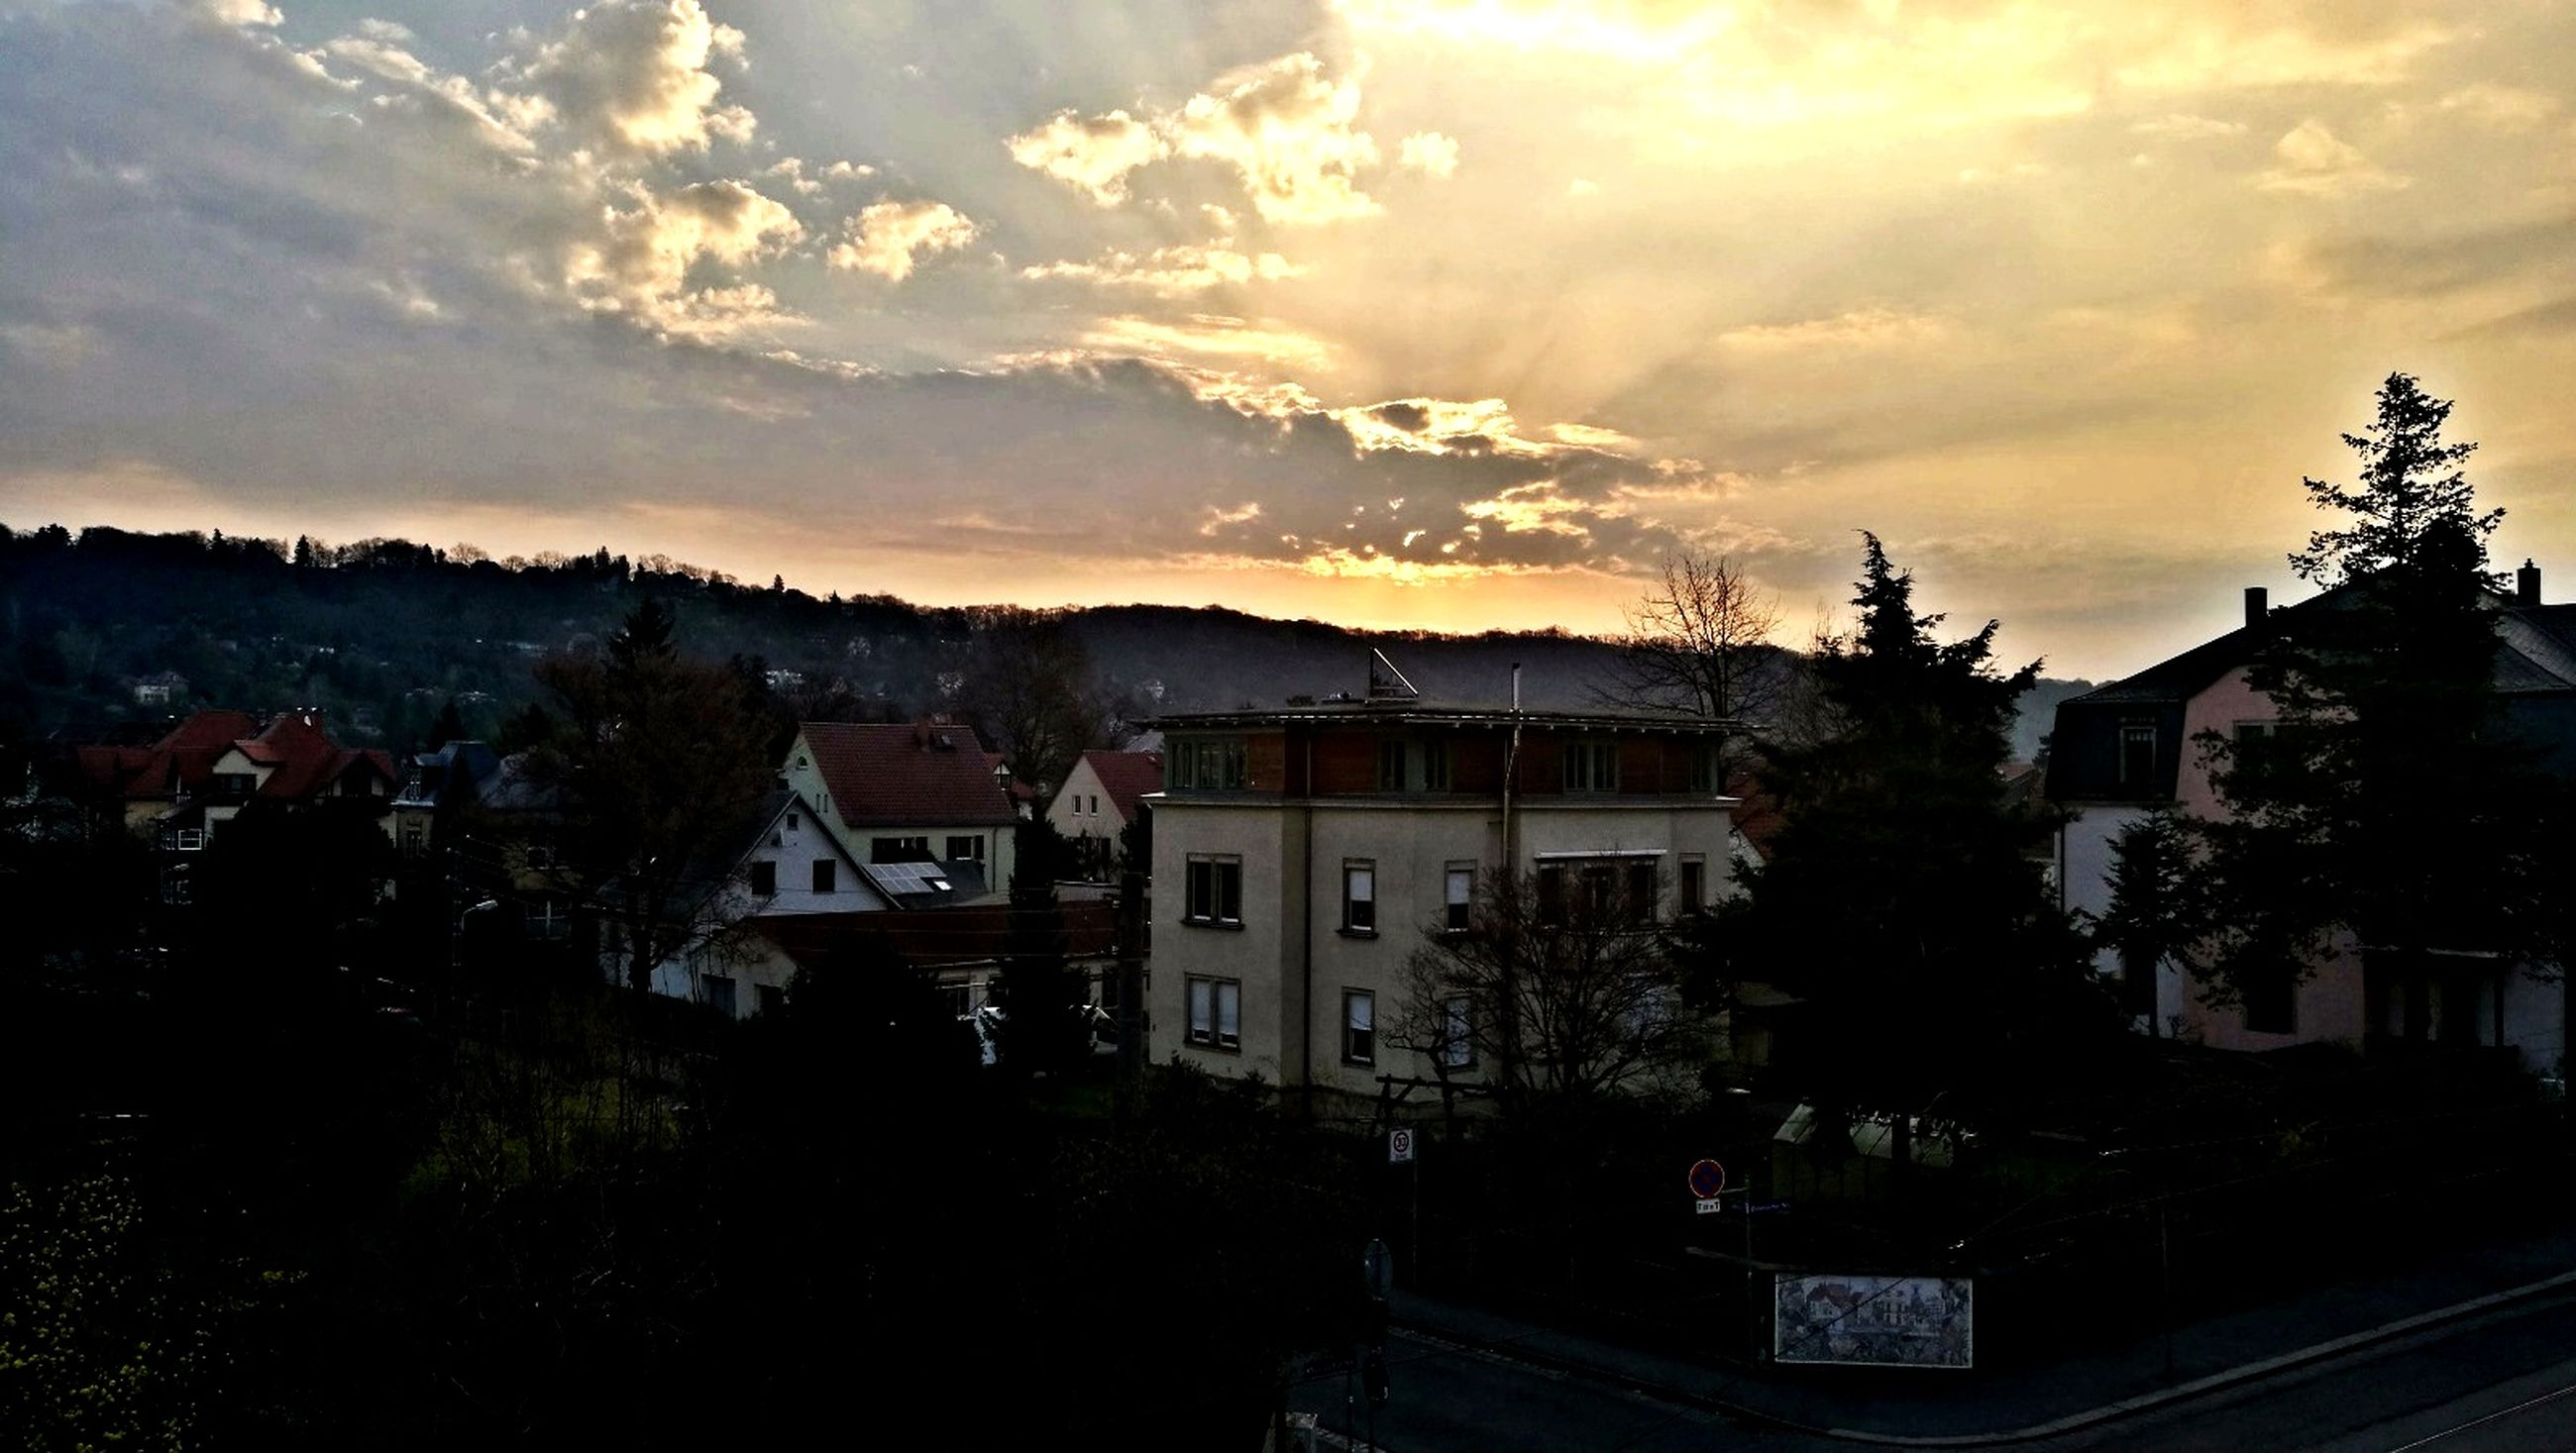 building exterior, architecture, built structure, sky, sunset, cloud - sky, house, residential district, outdoors, residential building, tree, city, no people, cityscape, detached house, mountain, beauty in nature, nature, day